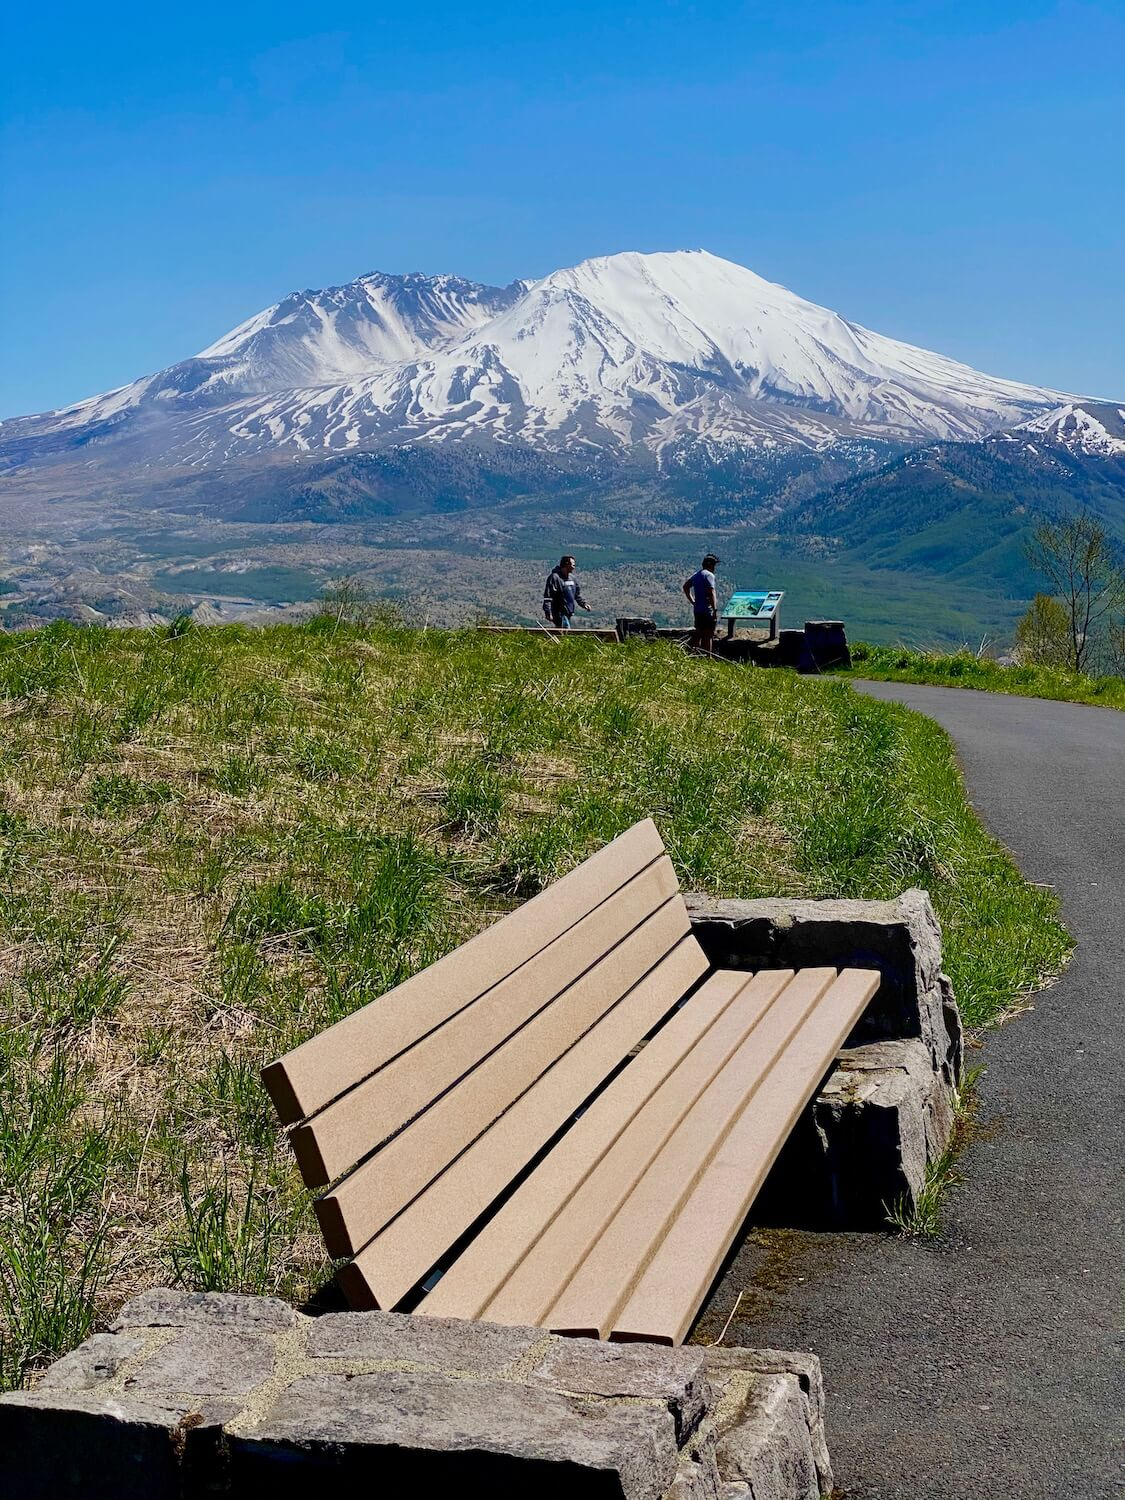 Mt. St. Helens from a viewpoint turnoff on Highway 504.  The green grass and brown seating bench in the foreground lead to two tourists reading a road marker on a paved trail.  The the majestic volcano crater of Mt. St. Helens rises up in the background.  The mountain is covered in white snow with veins of gray rock exposed.  The blue sky sets a vibrant background to this scene.